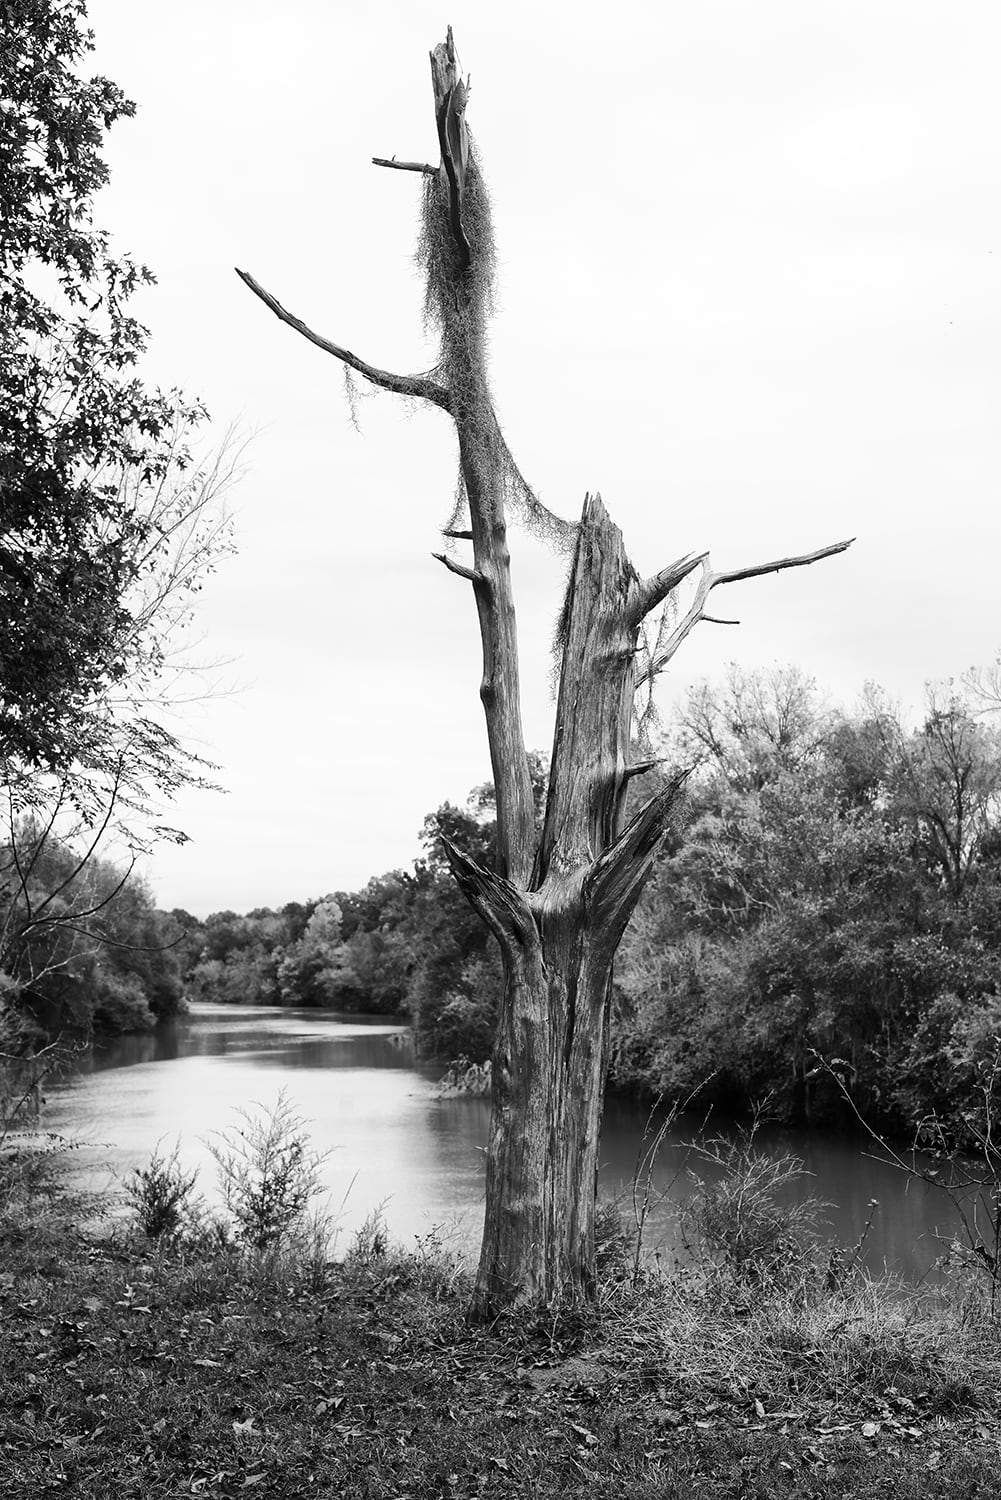 Barren tree with a river view black and white landscape